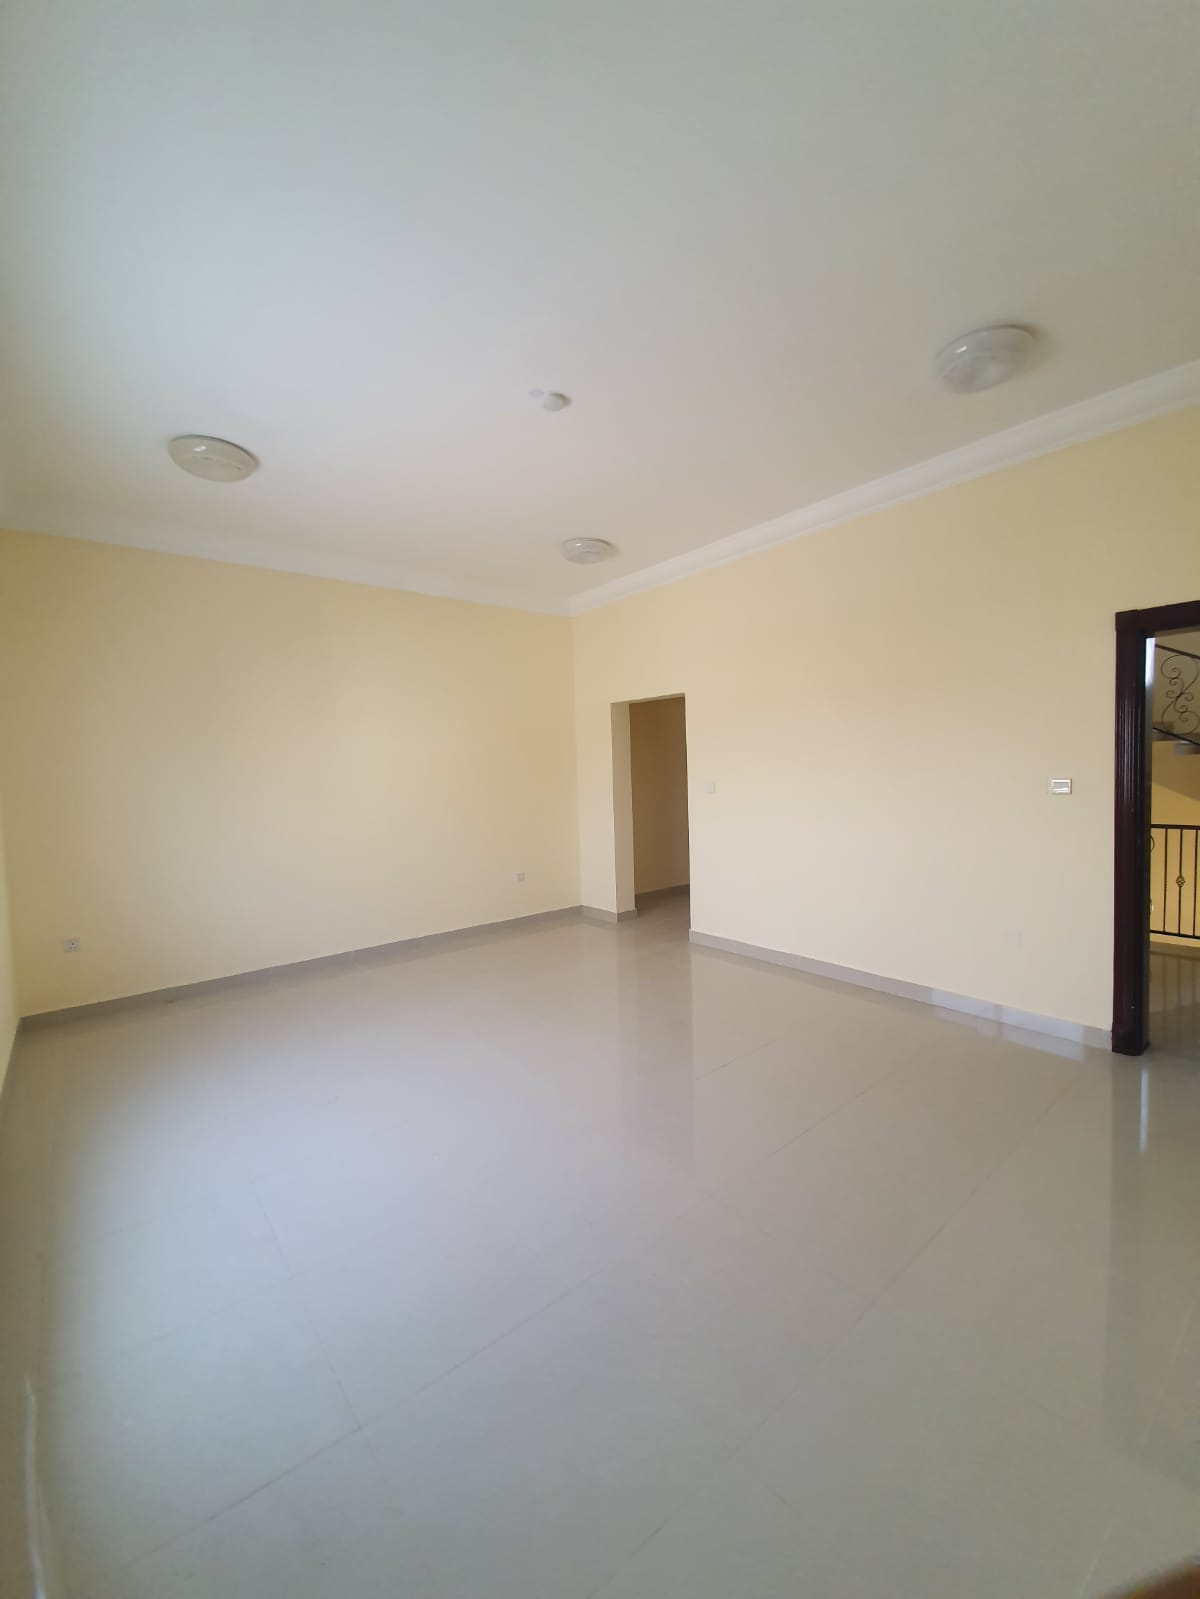 **NO COMMISSION** SPACIOUS 4+2 ROOMS 4 BATH VILLAS AVAILABLE FOR EXECUTIVE BACHELORS IN AIN KHALID